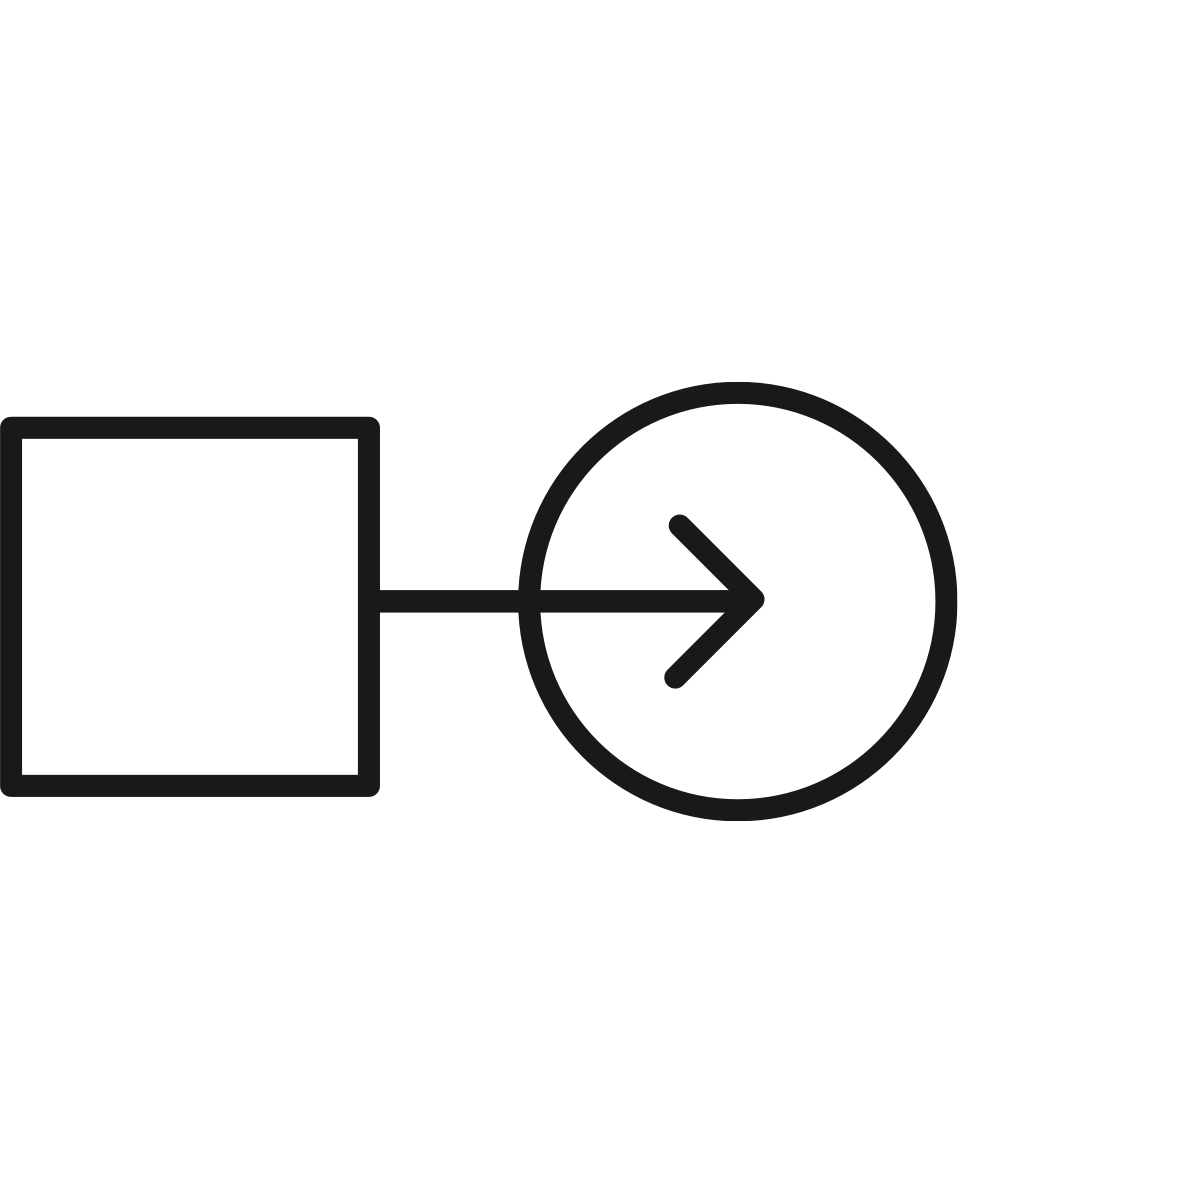 A black line drawing of a square attached to an arrow pointing to circle to represent navigating change.